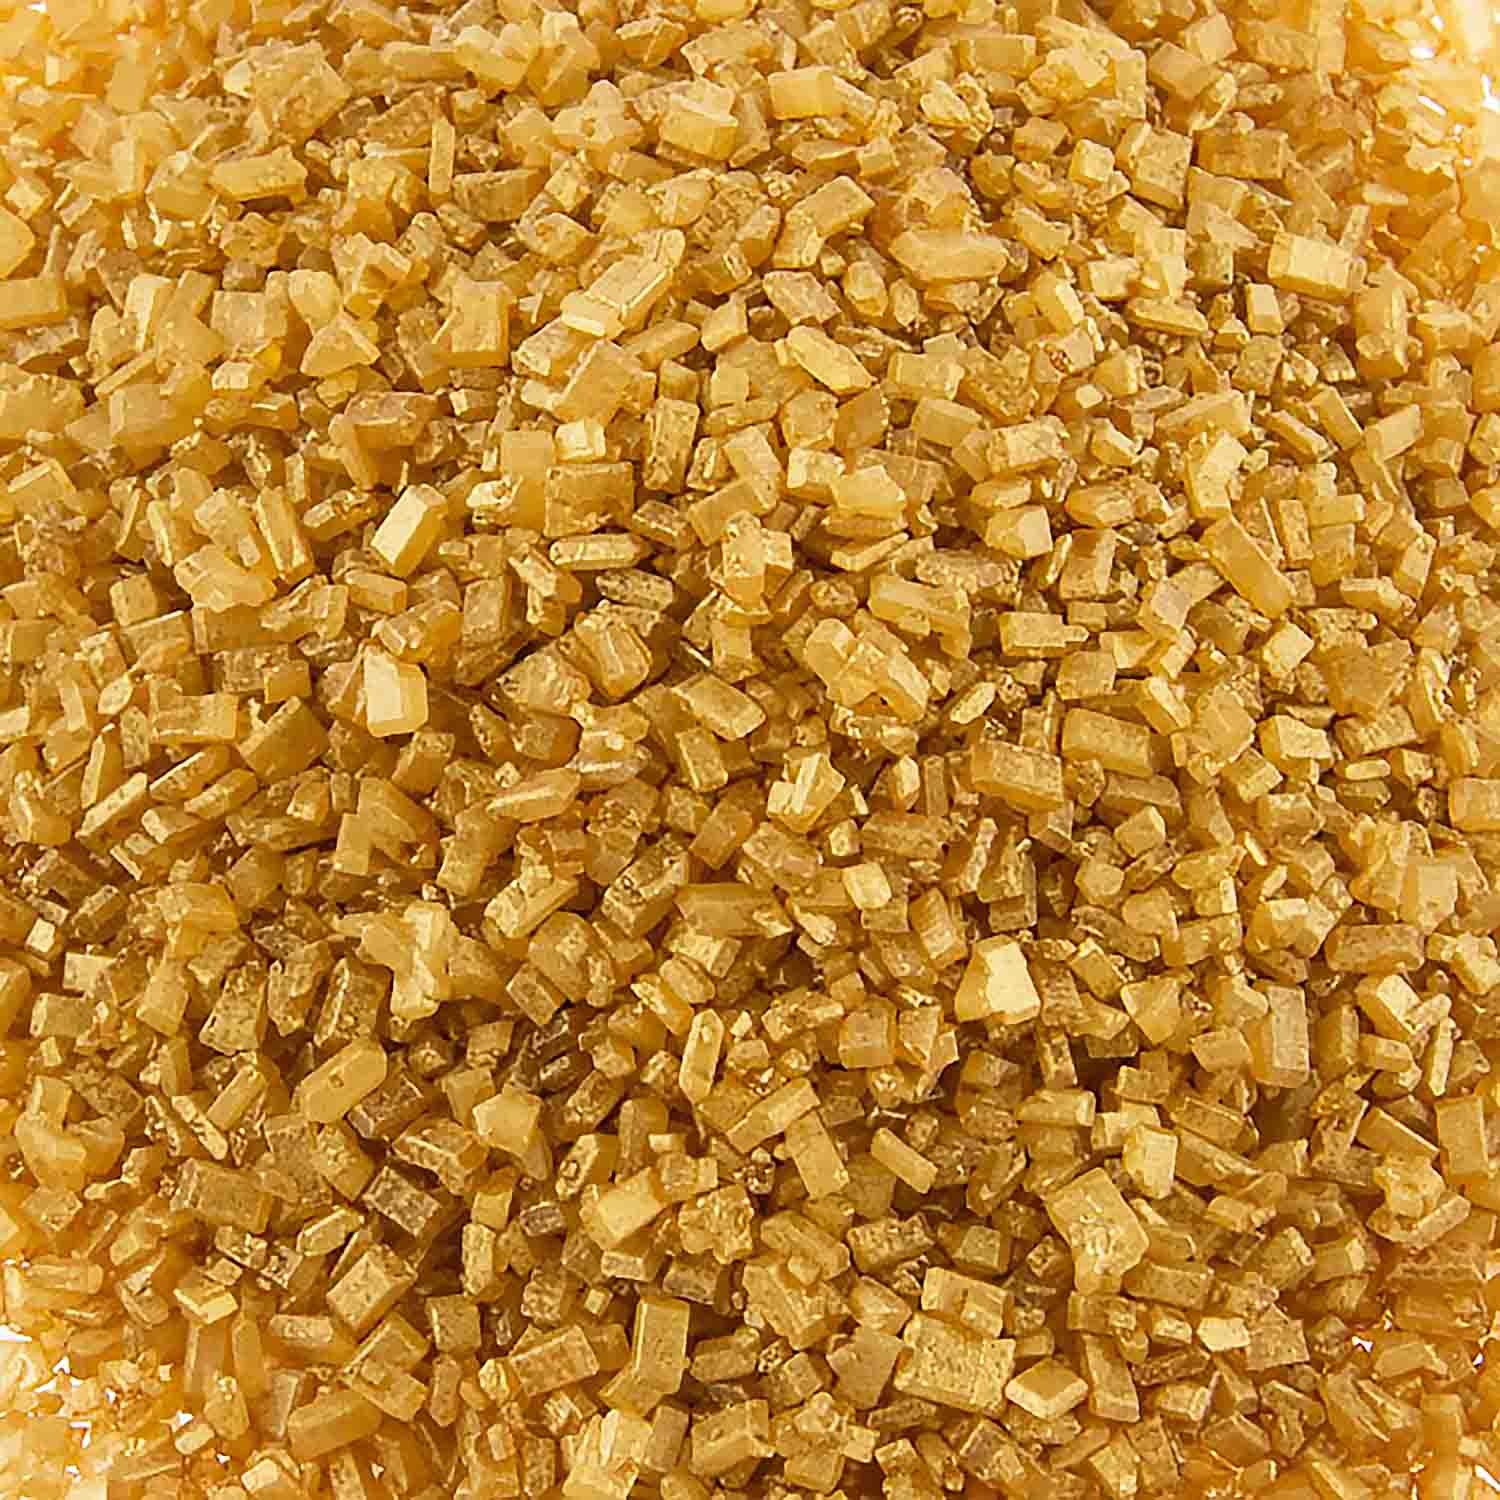 Shimmering Gold Coarse Sugar / Sugar Crystals